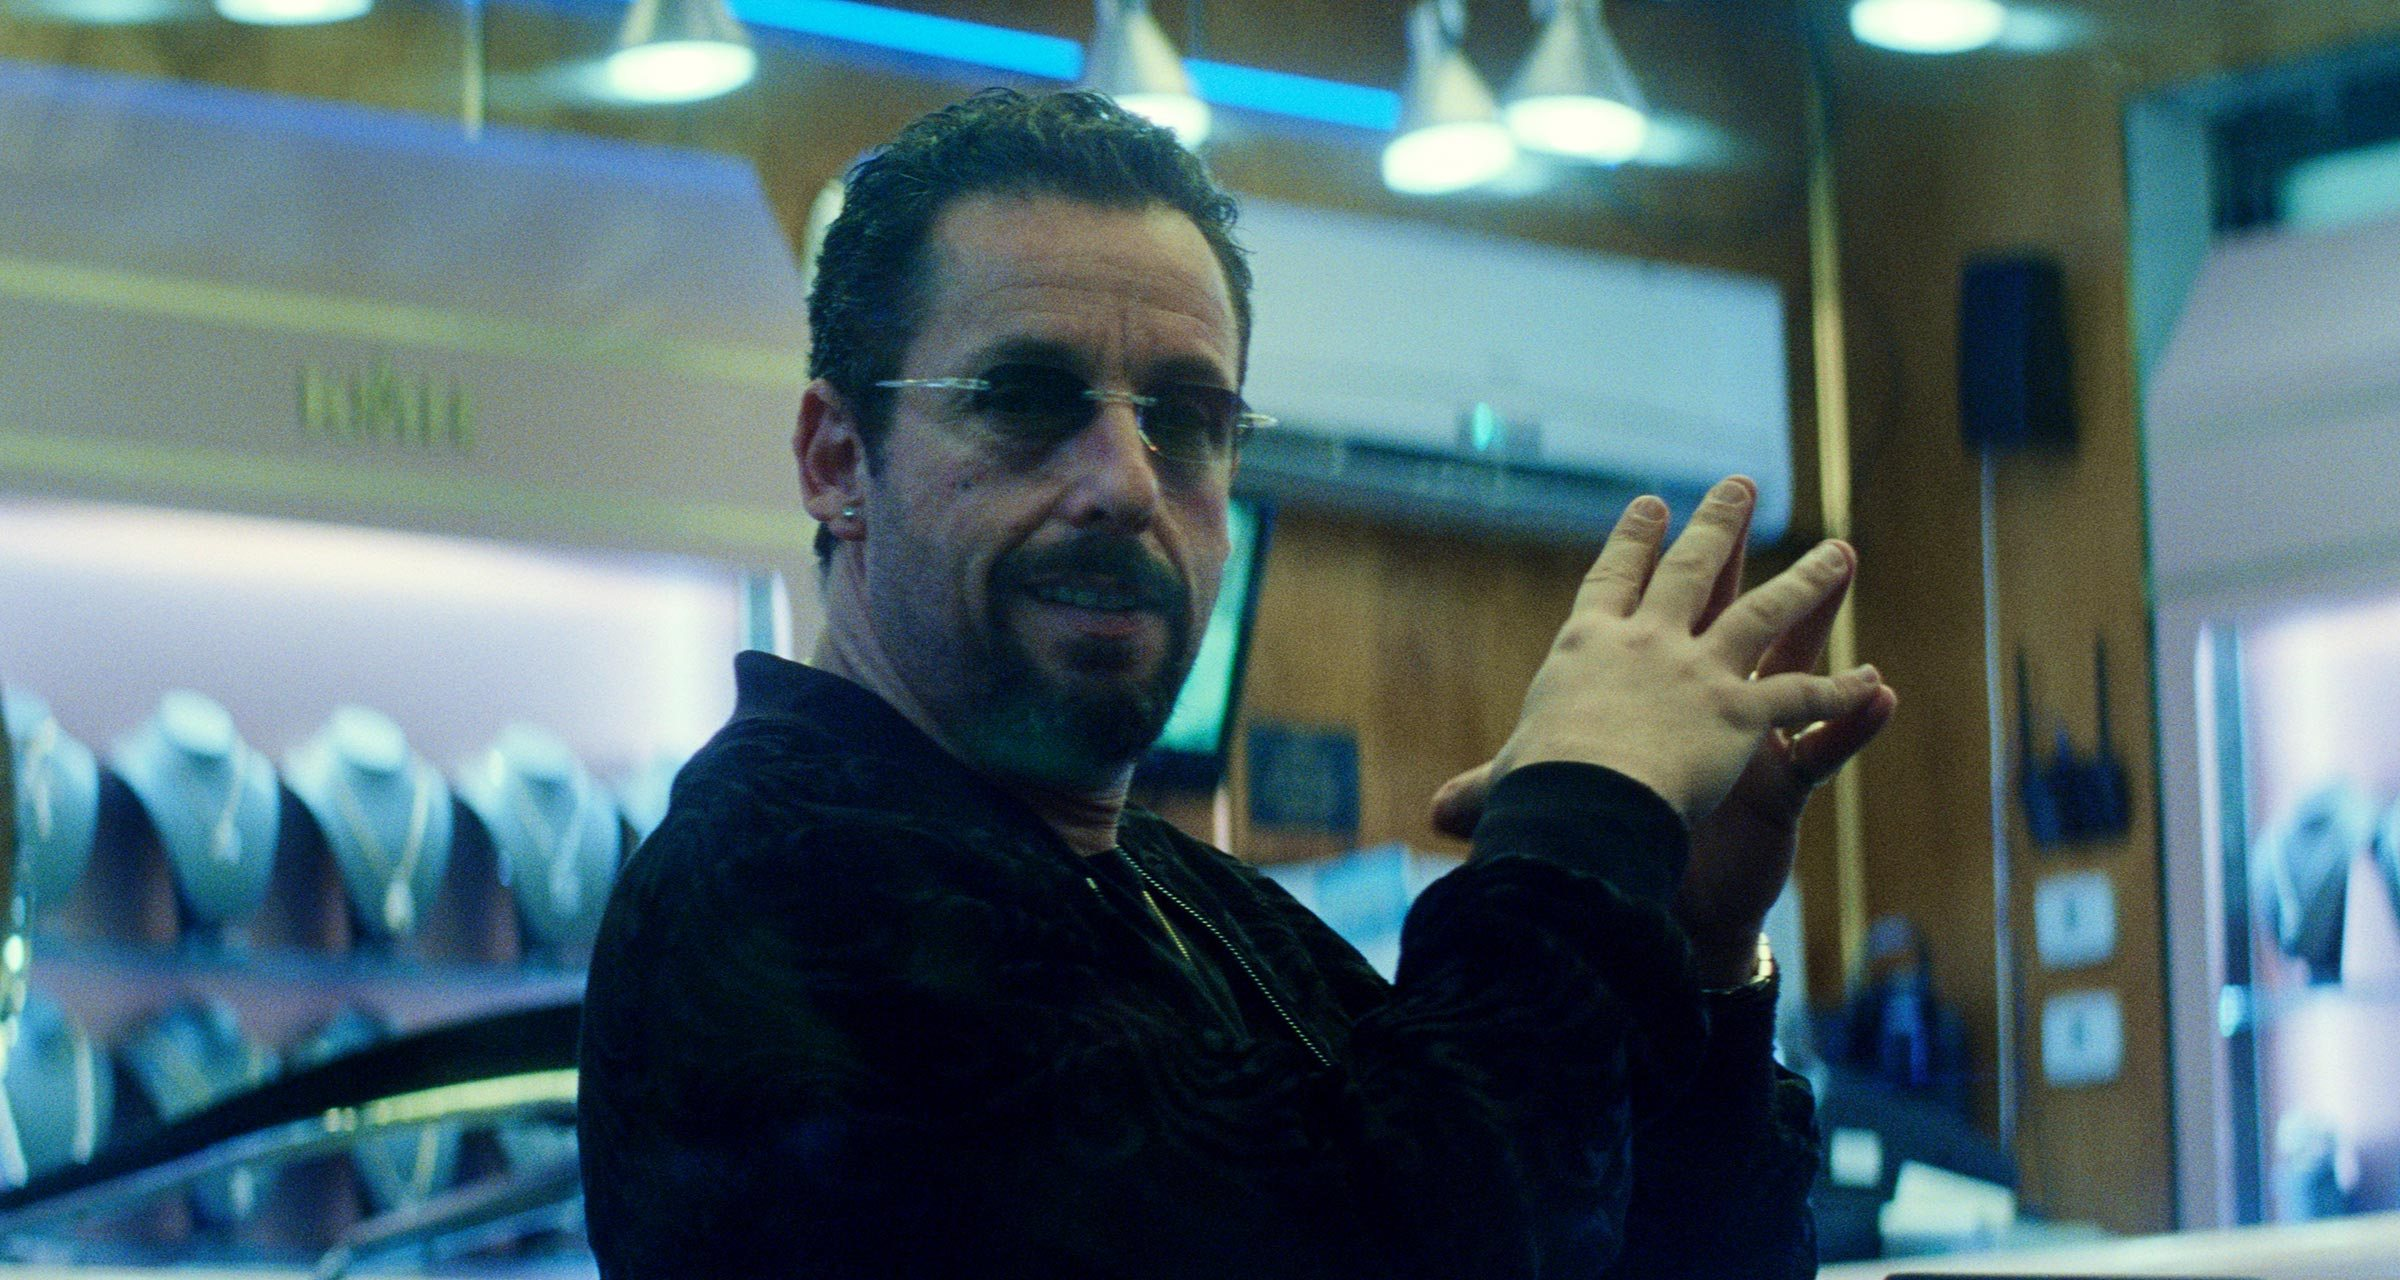 Adam Sandler, wearing dark glasses, tents his fingers in a shot from the movie Uncut Gems.